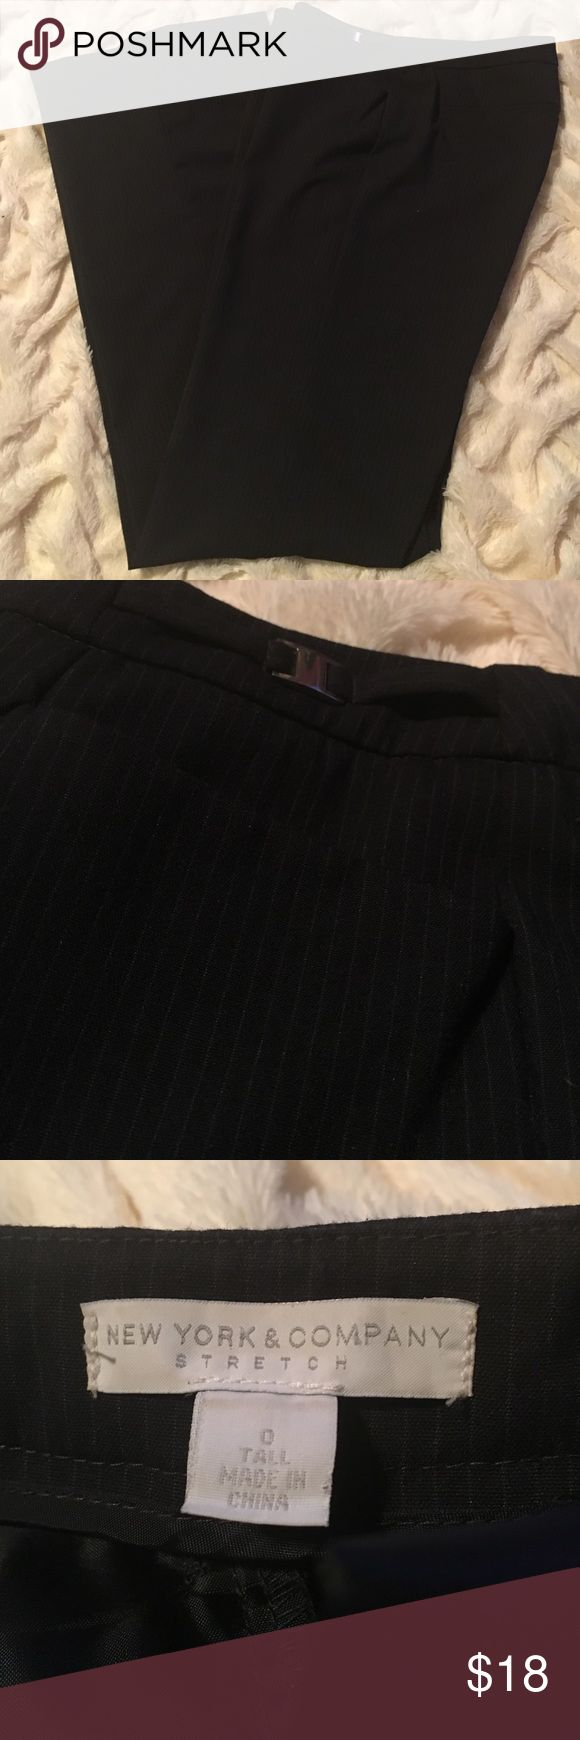 NY&Co navy blue pinstripe dress pants, size 0 Tall These NY&Co dress pants are dark navy blue with a lighter blue pinstripe. Size 0 tall. Only worn once..in like-new condition. Non-smoking home. New York & Company Pants Trousers